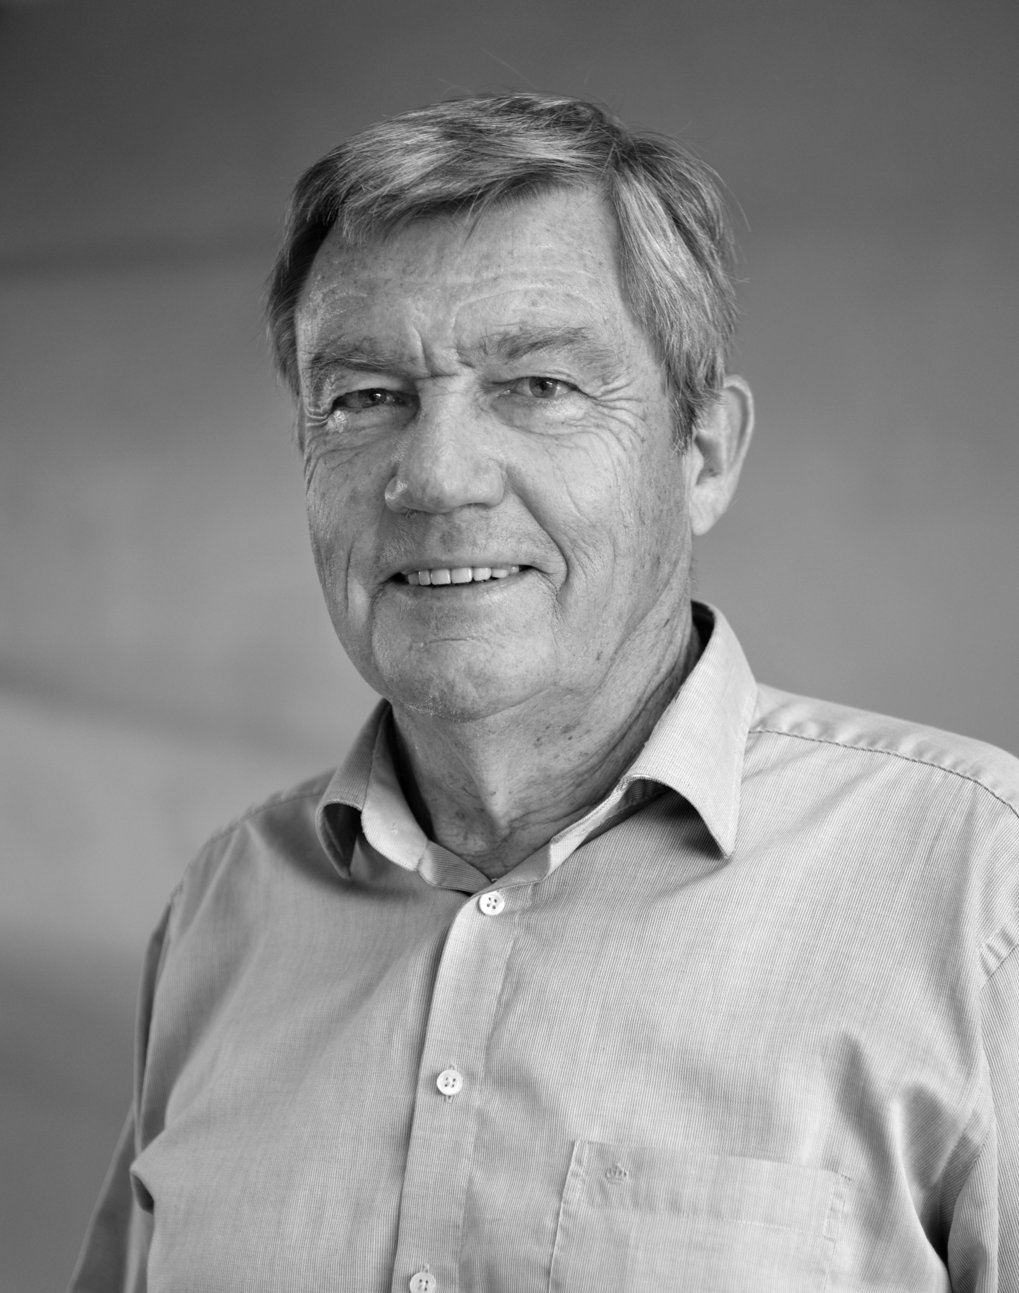 Helmuth Möhwald (19.01.1946 - 27.3.2018), founding director of the Max Planck Institute of Colloids and Interfaces